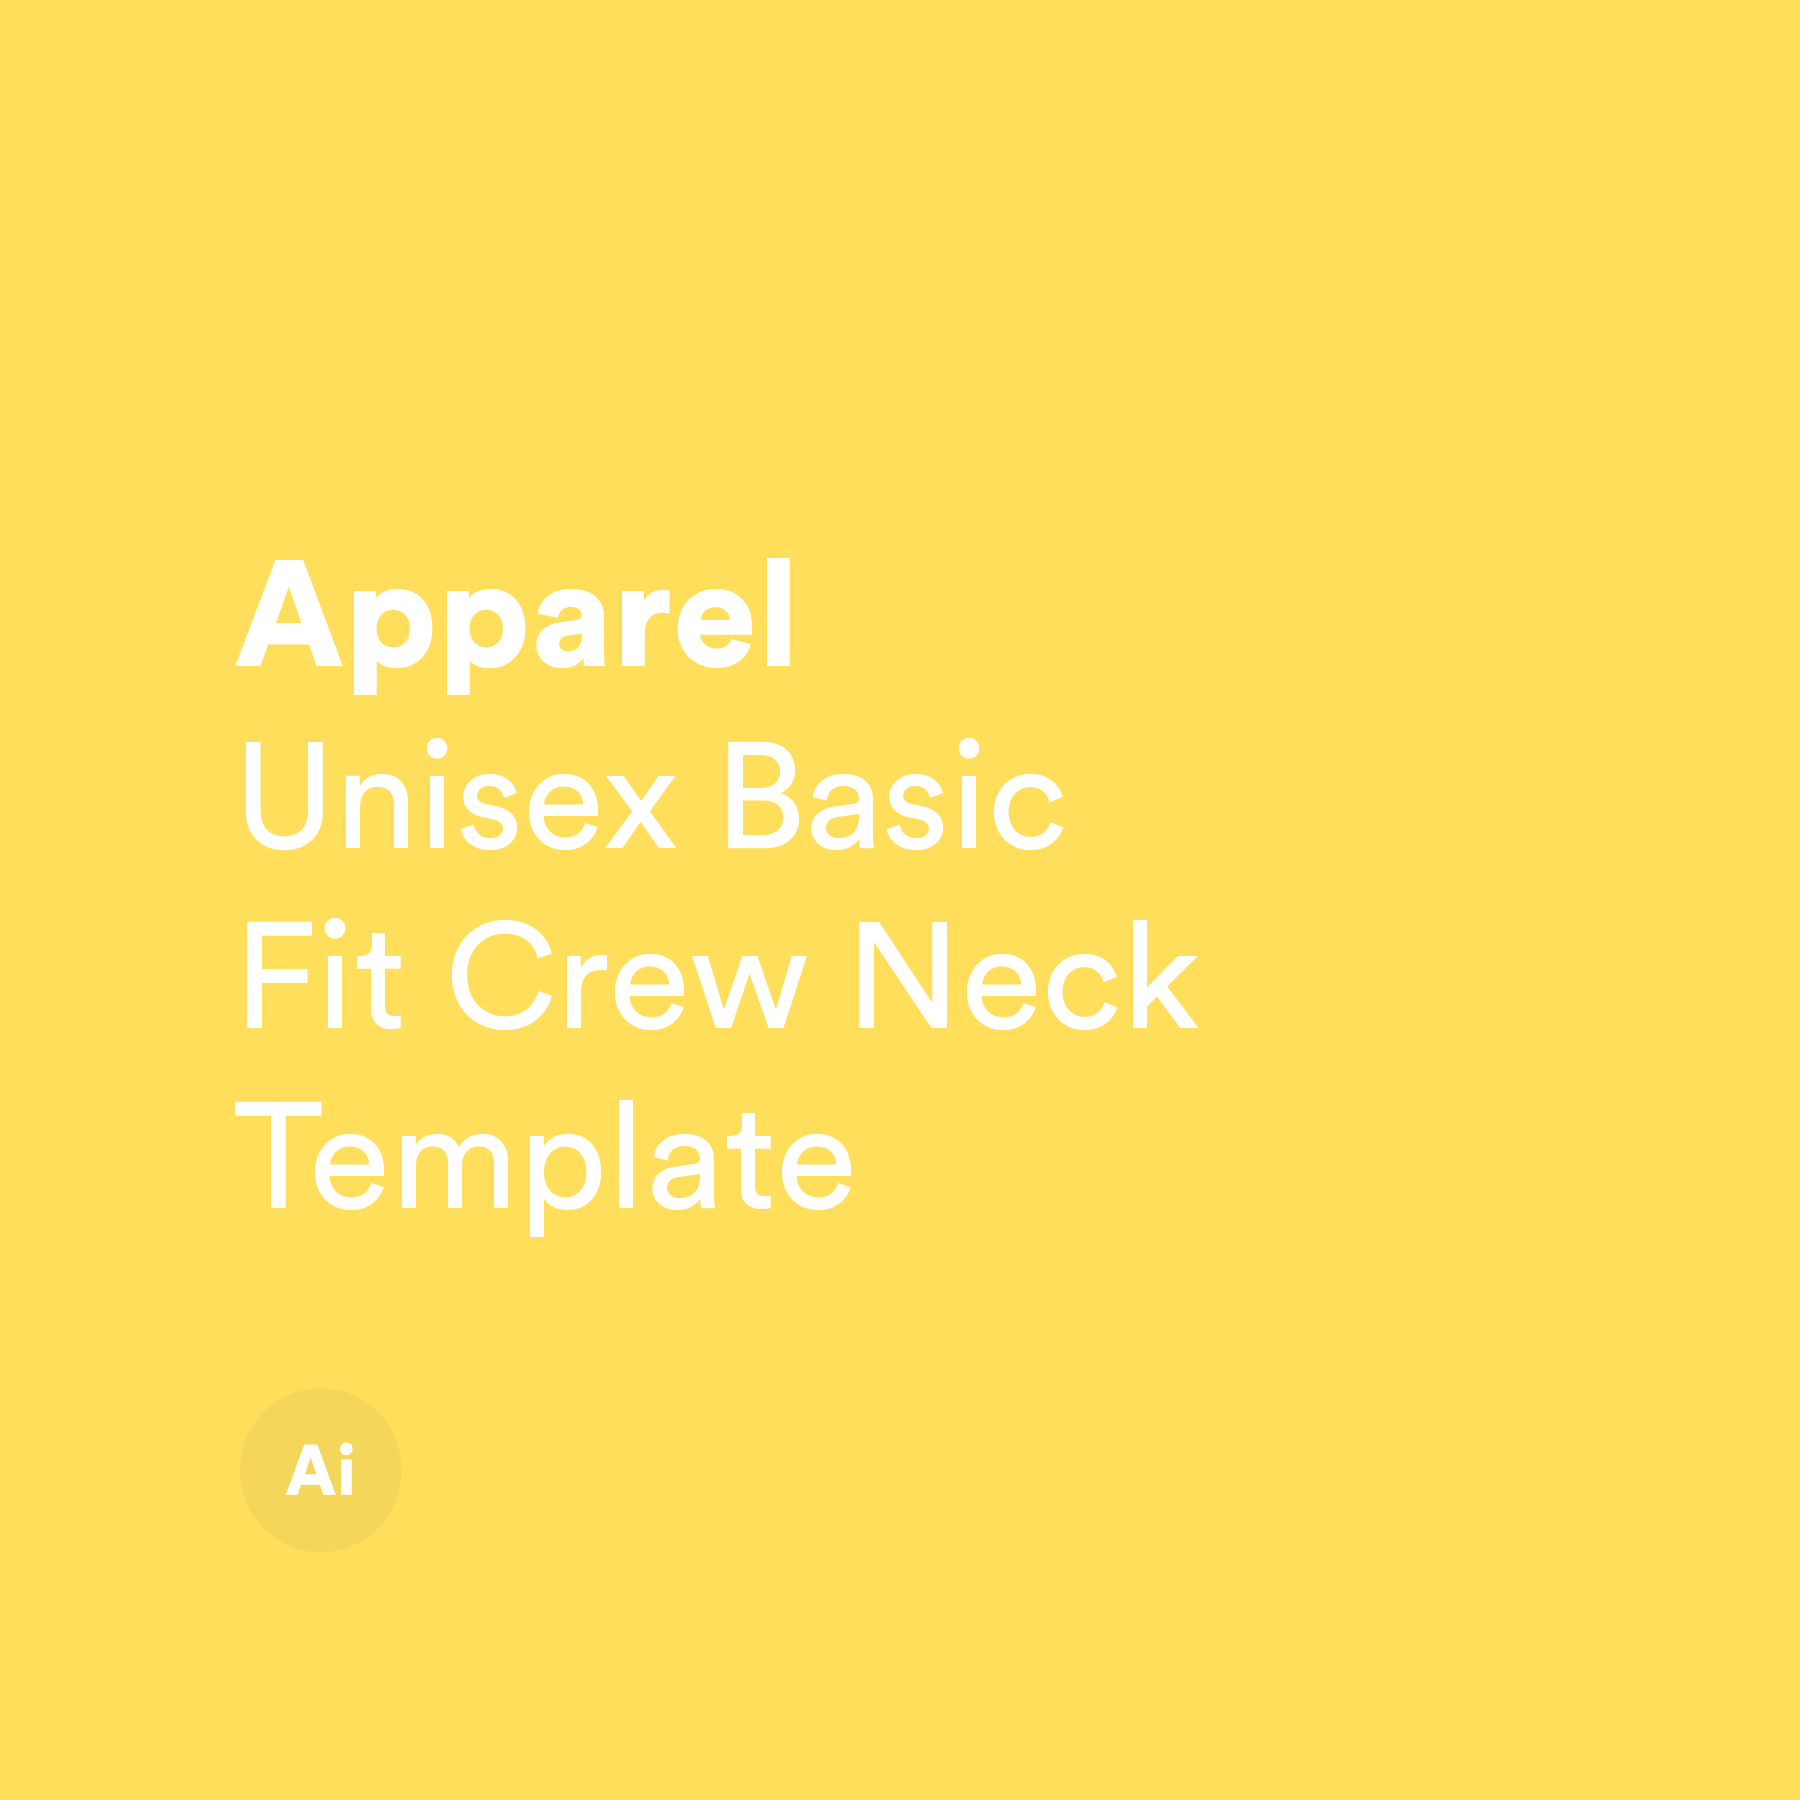 Unisex Basic Fit Crew Neck Template